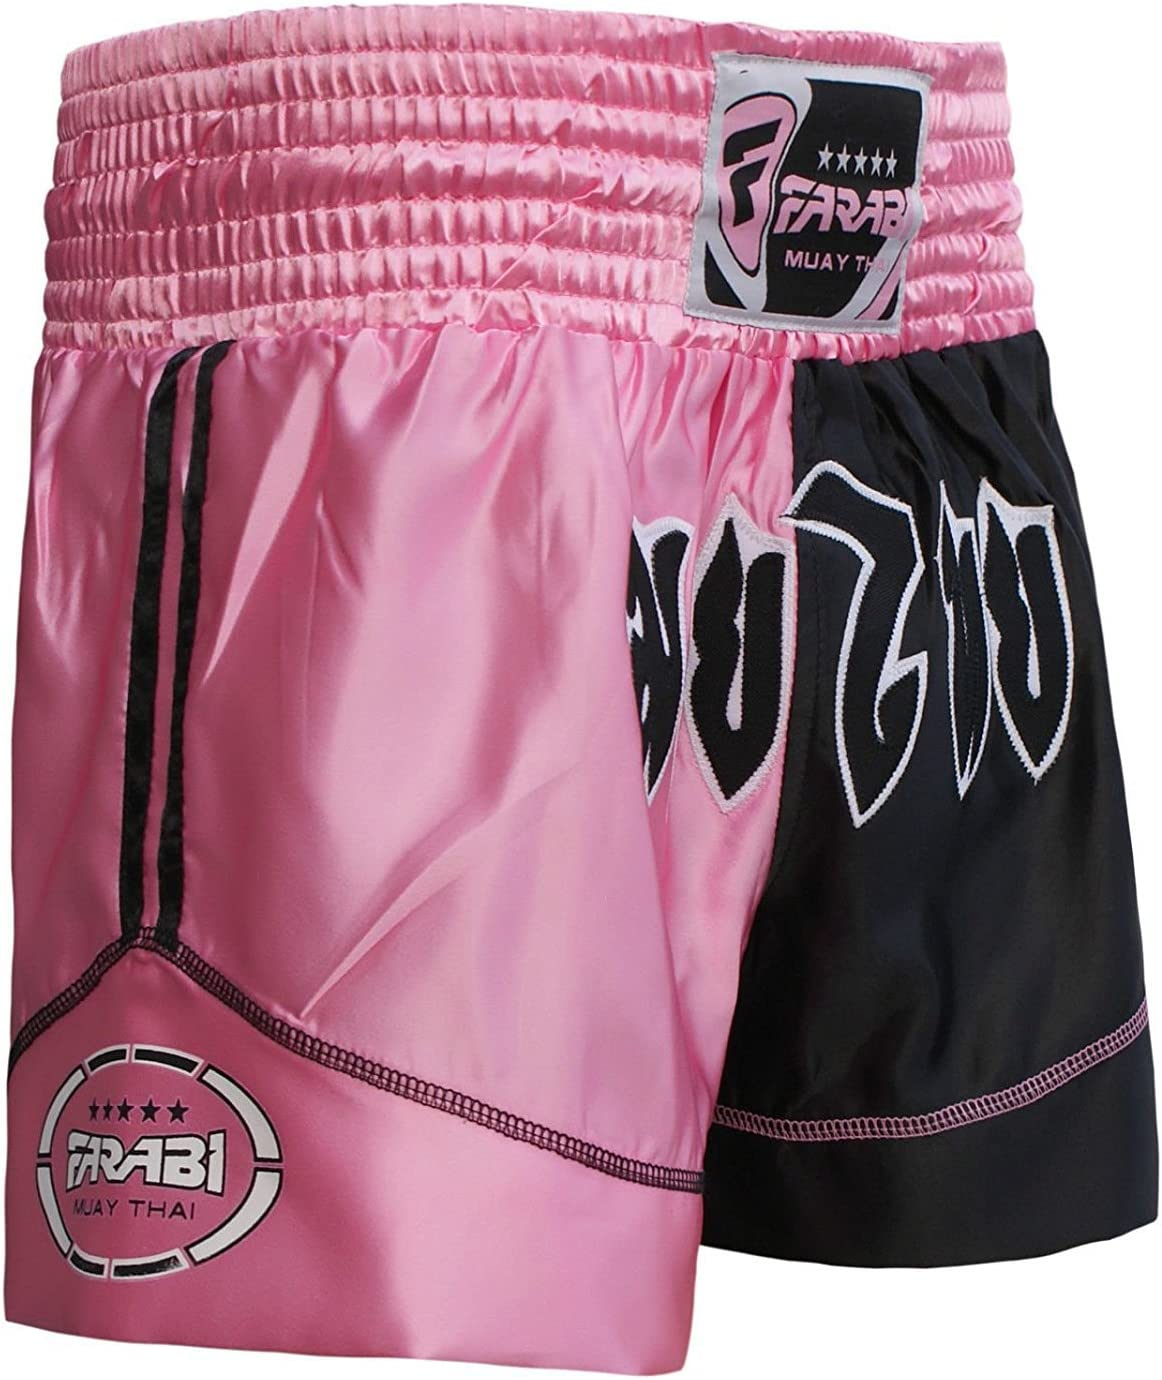 Muay Thai Boxing Kick Boxing Martial Arts Shorts Pink Black Shorts